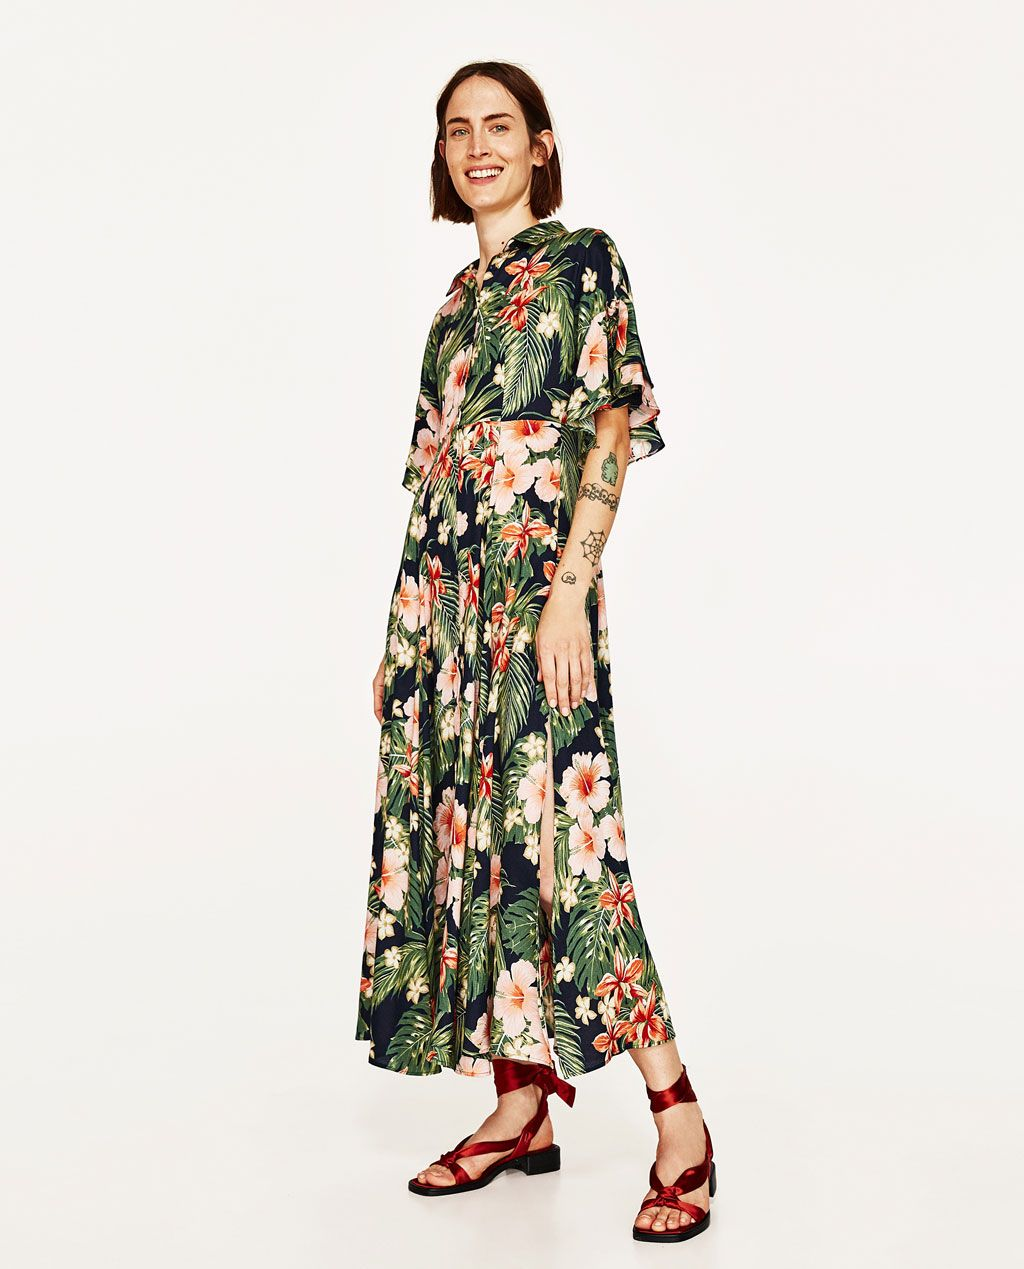 d7693073351d Image 1 of LONG FLORAL PRINT SHIRT DRESS from Zara. LONG FLORAL PRINT SHIRT  DRESS - NEW IN Casual Summer Dresses ...